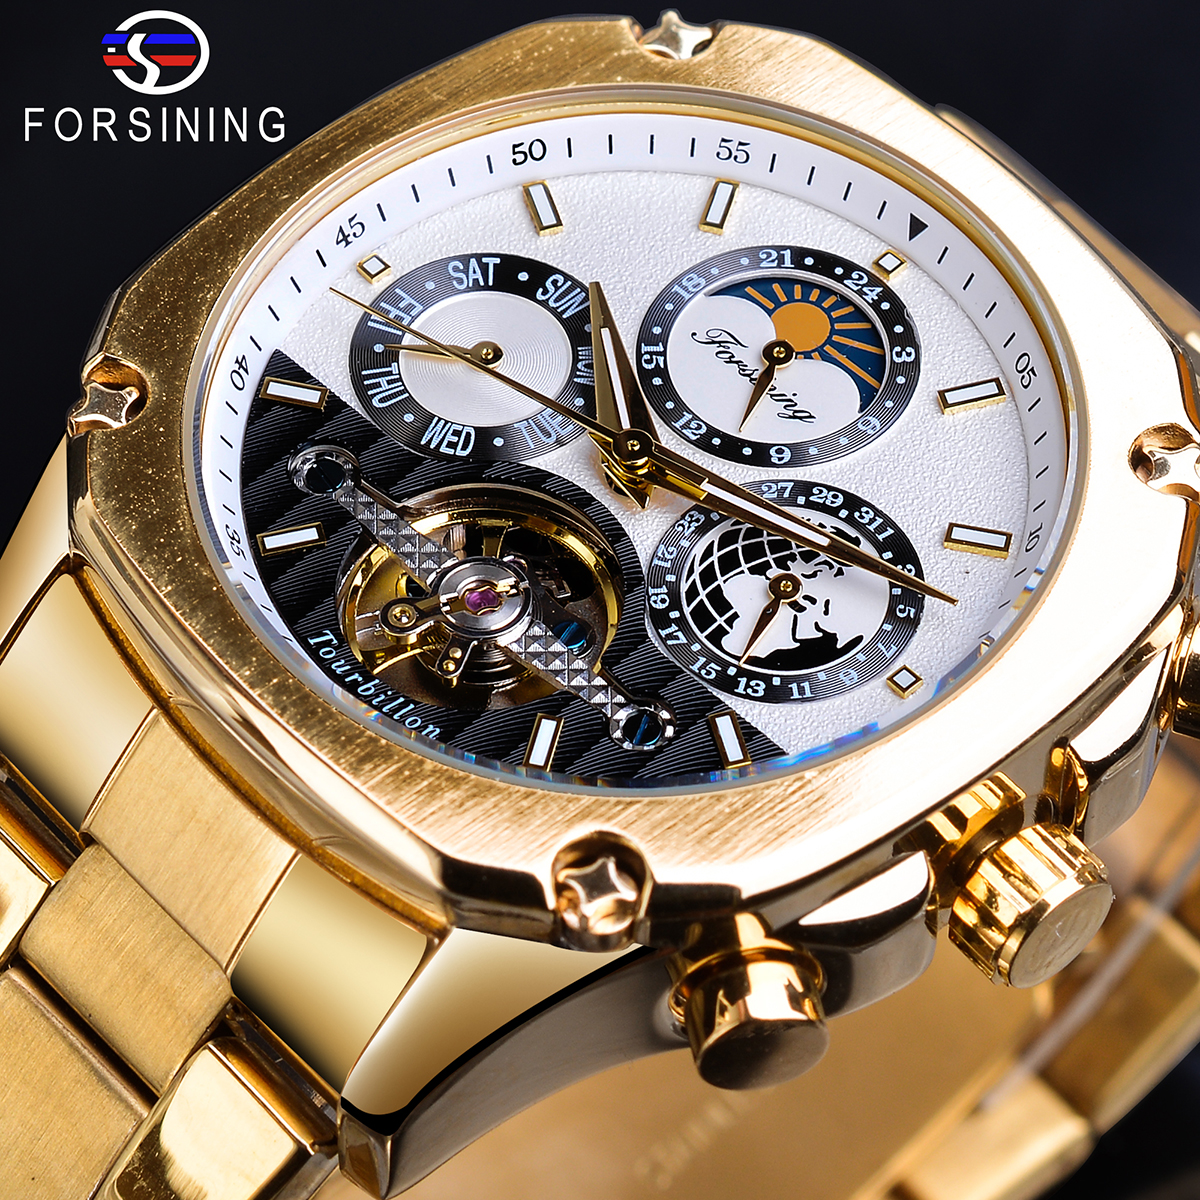 Forsining Golden Tourbillon Moonphase Mechanical Watches Automatic Male Transparent Gear Self Wind Steel Band Clock Wristwatches|Mechanical Watches| |  - title=